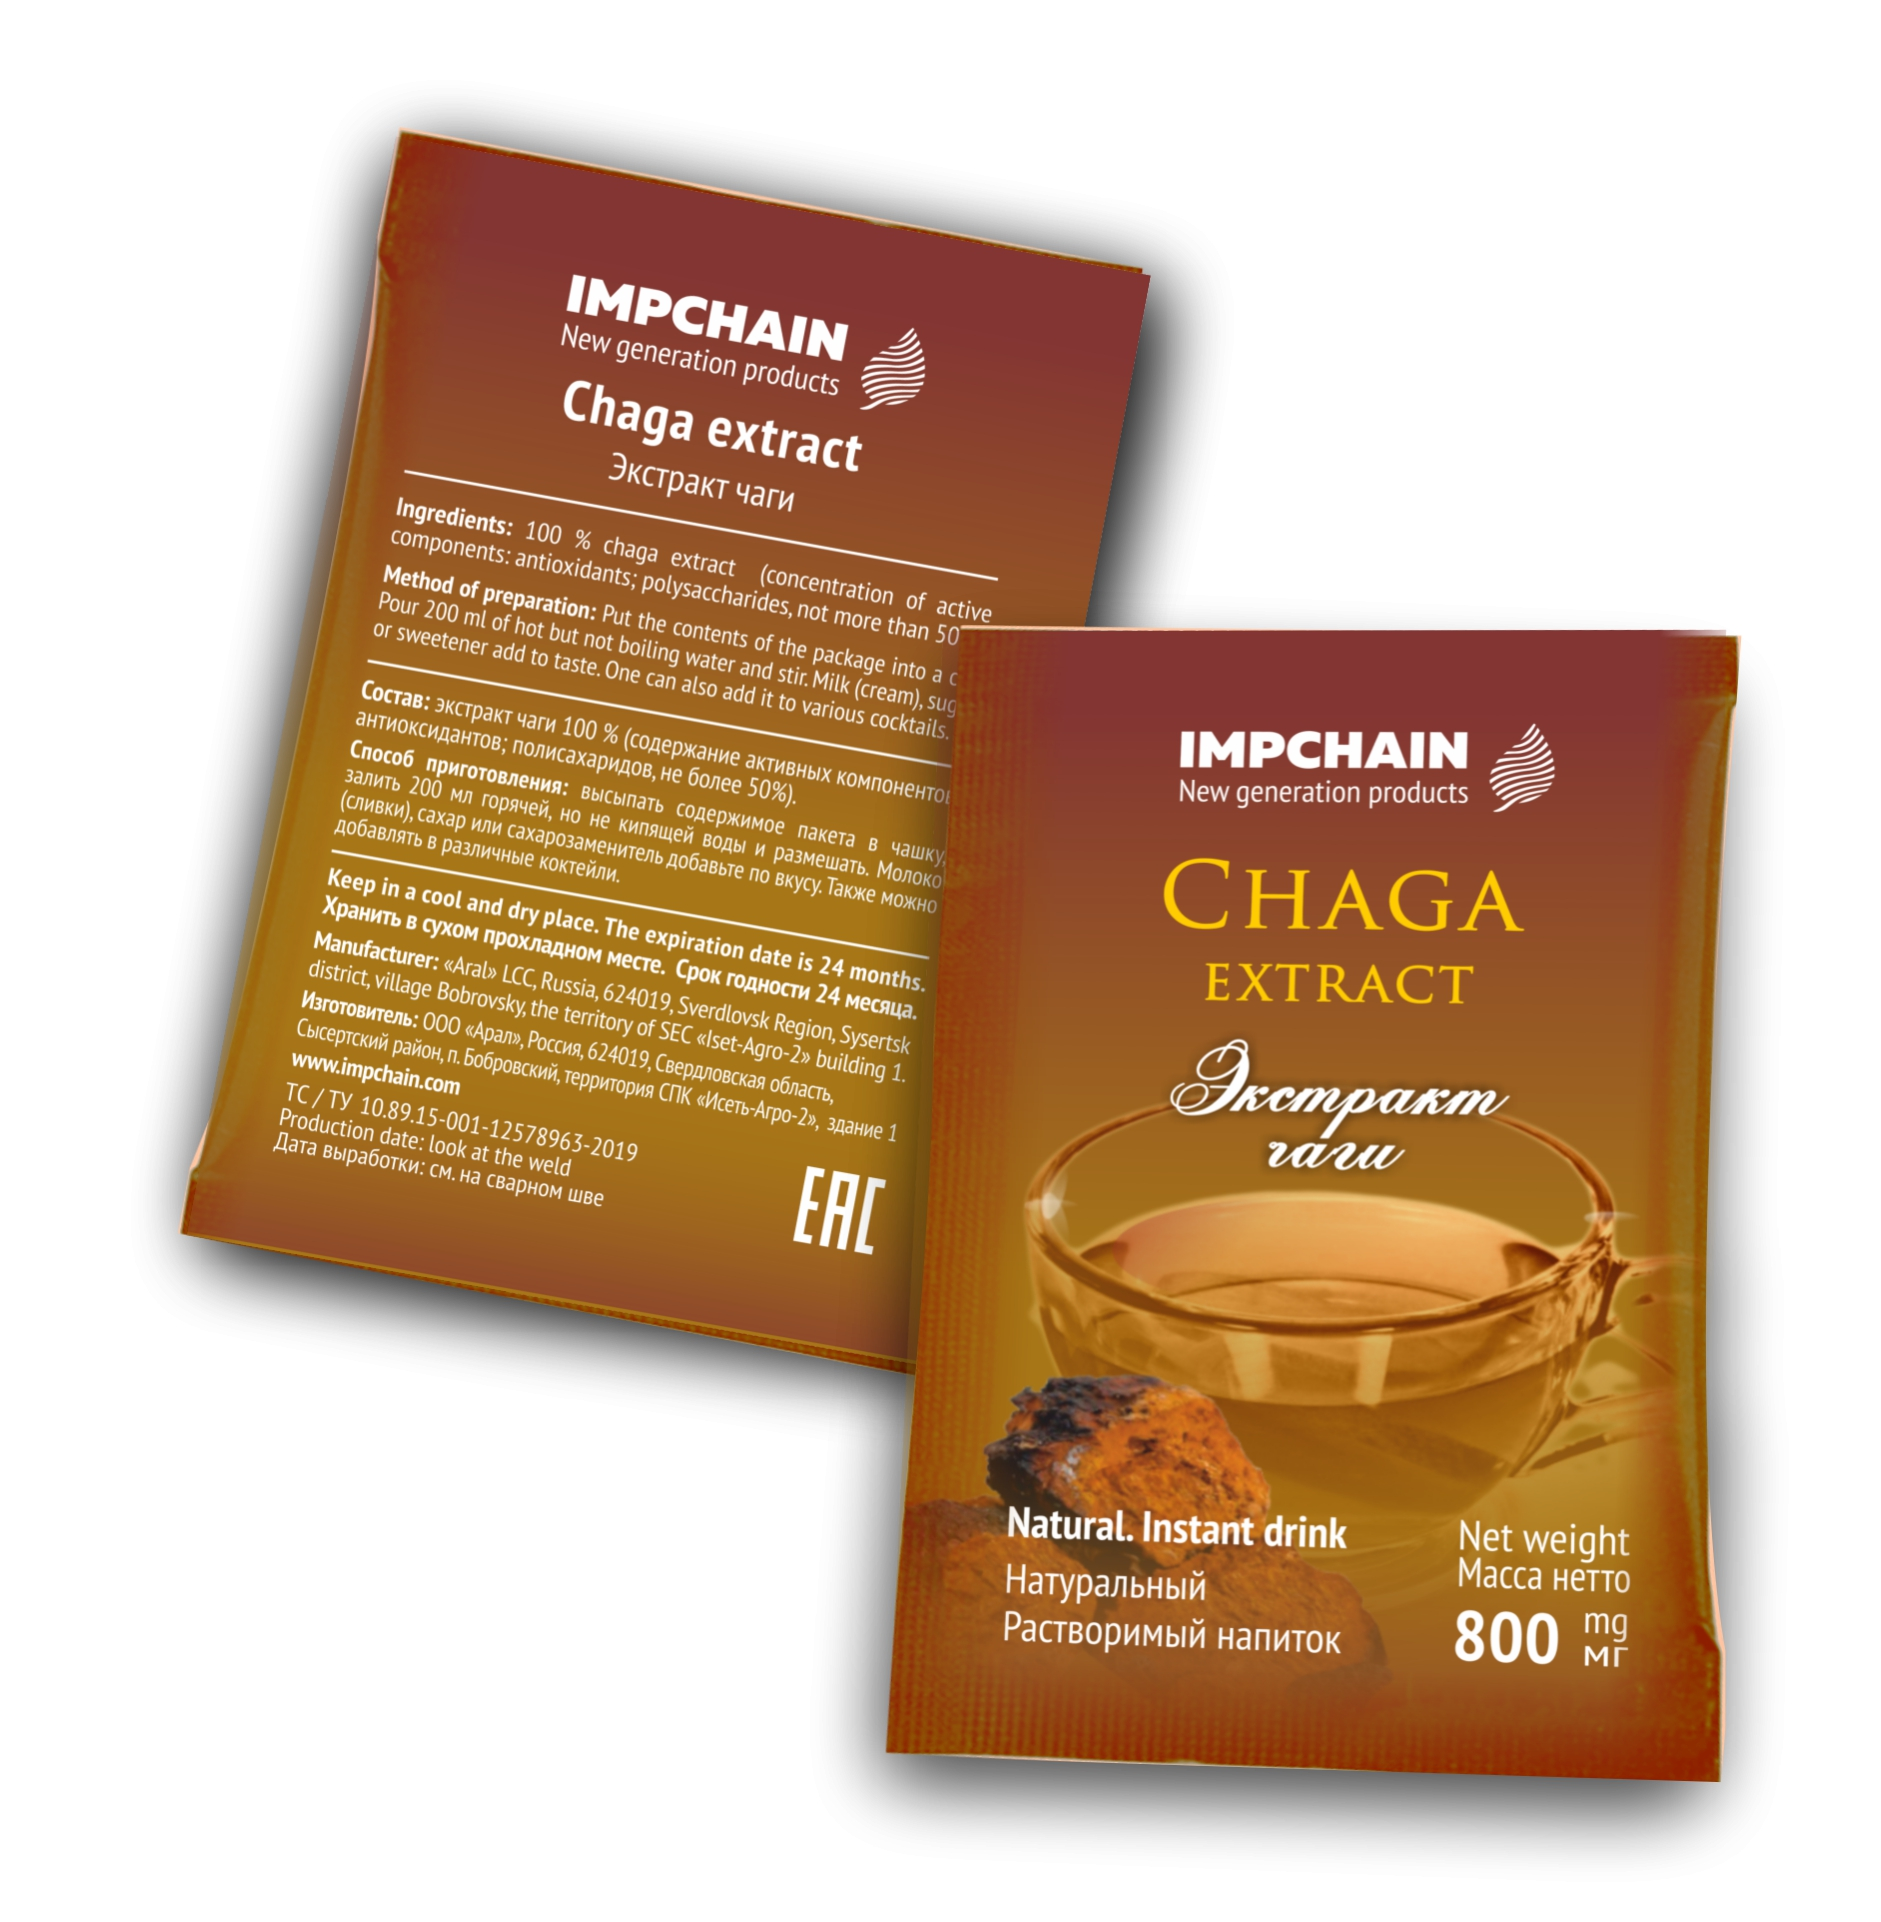 Chaga extract. Instant drink. The price is indicated for the 1st package. The price of a bag is 20 rubles.